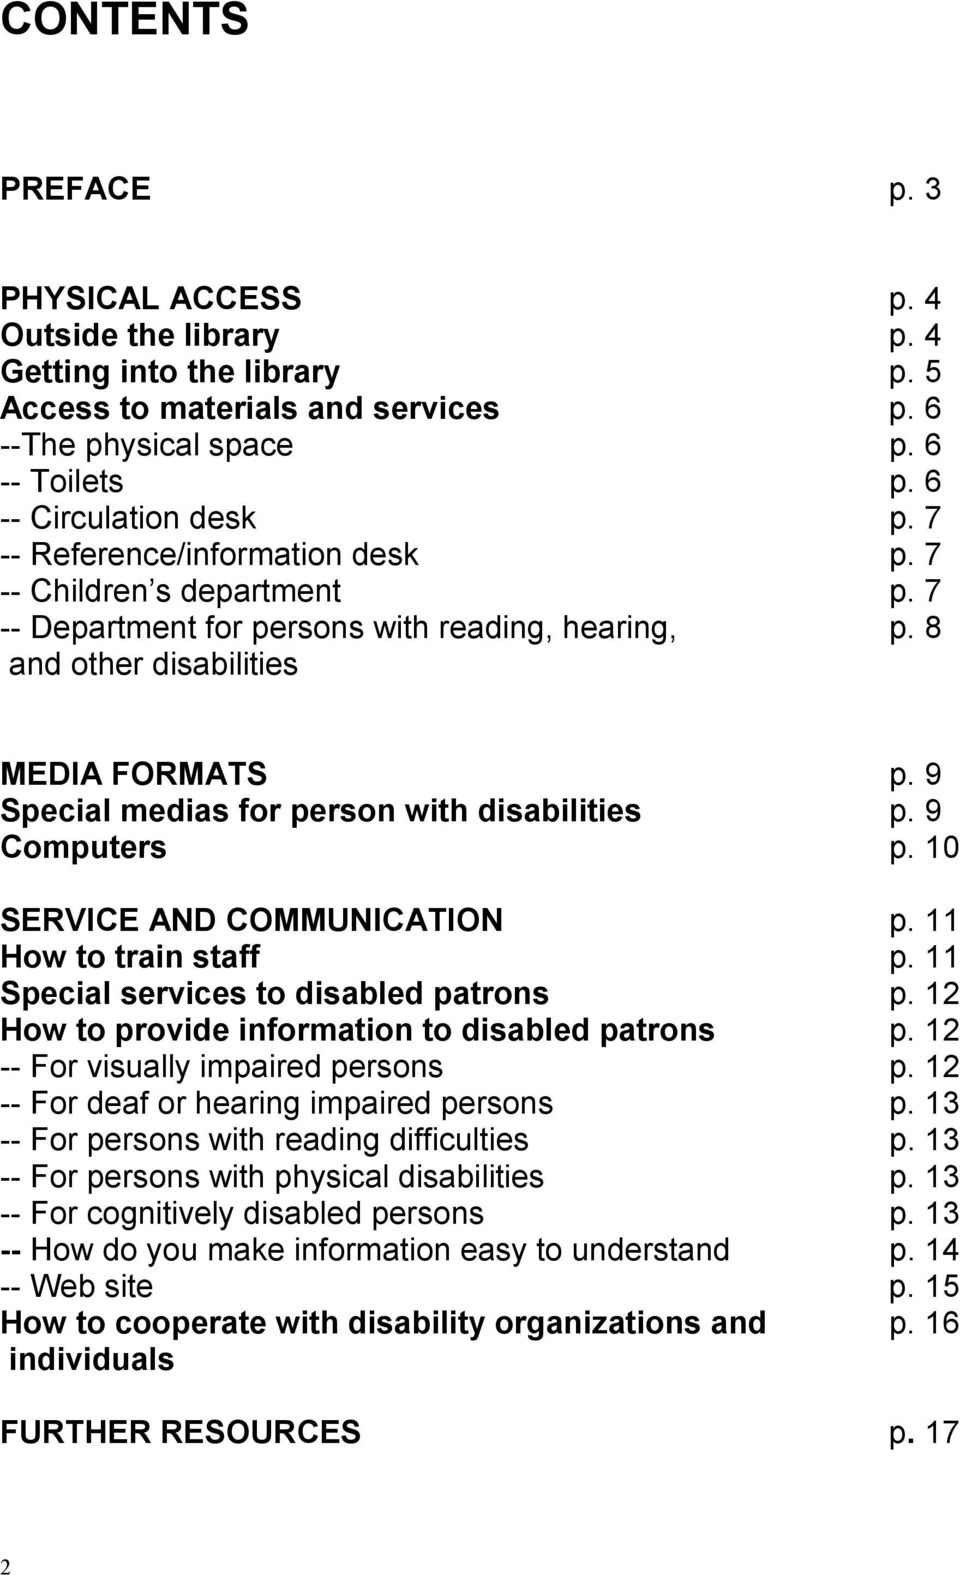 8 and other disabilities MEDIA FORMATS Special medias for person with disabilities Computers p. 9 p. 9 p. 10 SERVICE AND COMMUNICATION p. 11 How to train staff p.